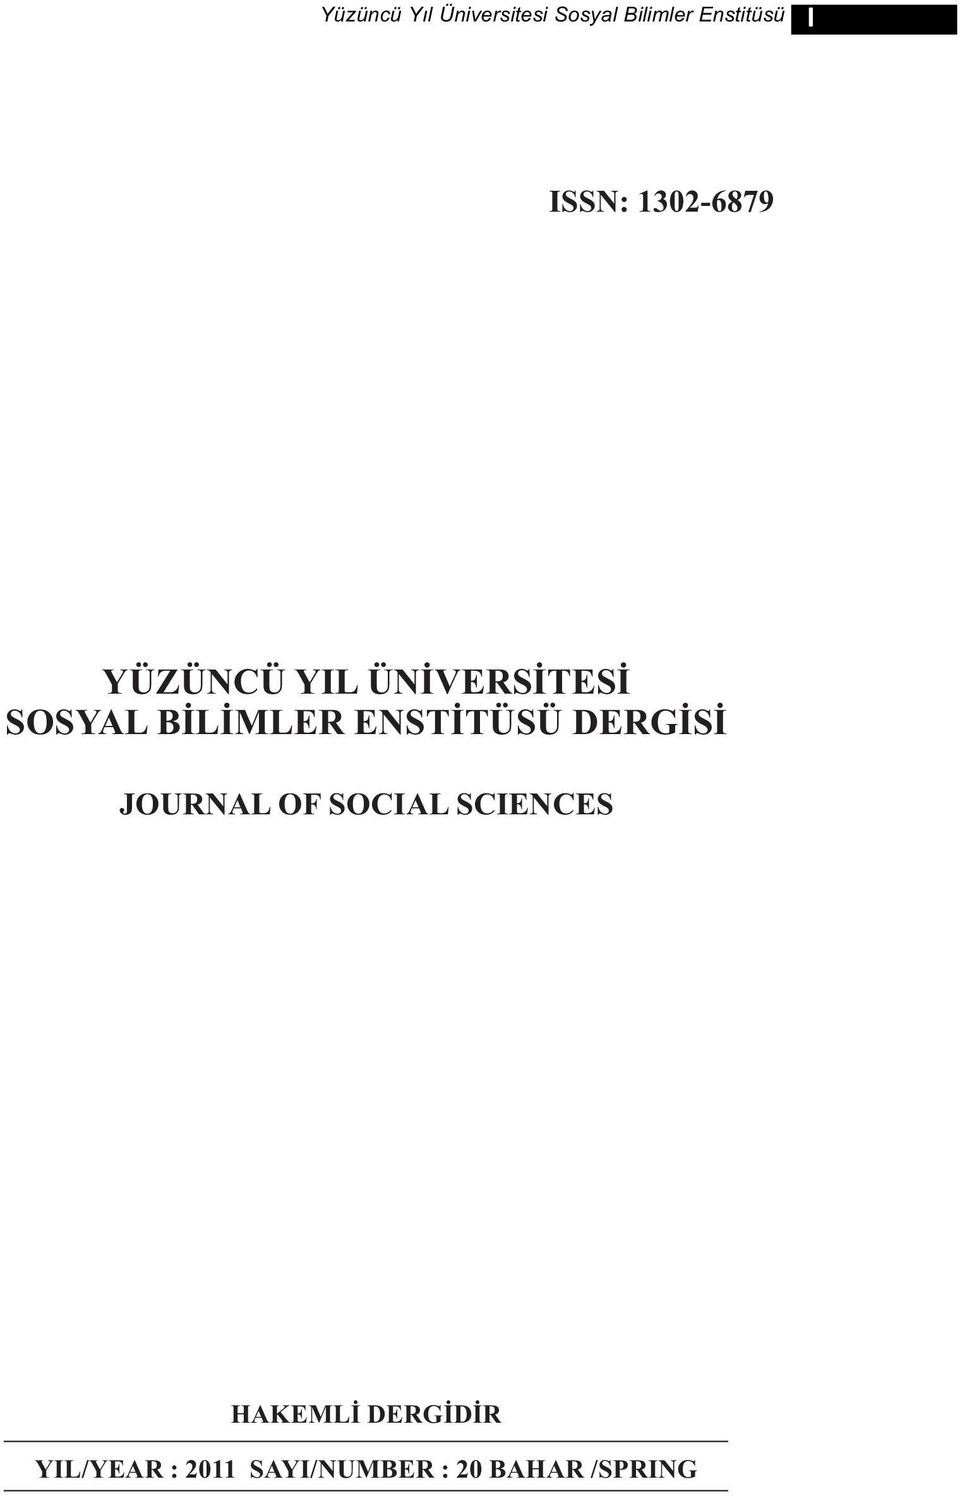 BİLİMLER ENSTİTÜSÜ DERGİSİ JOURNAL OF SOCIAL SCIENCES